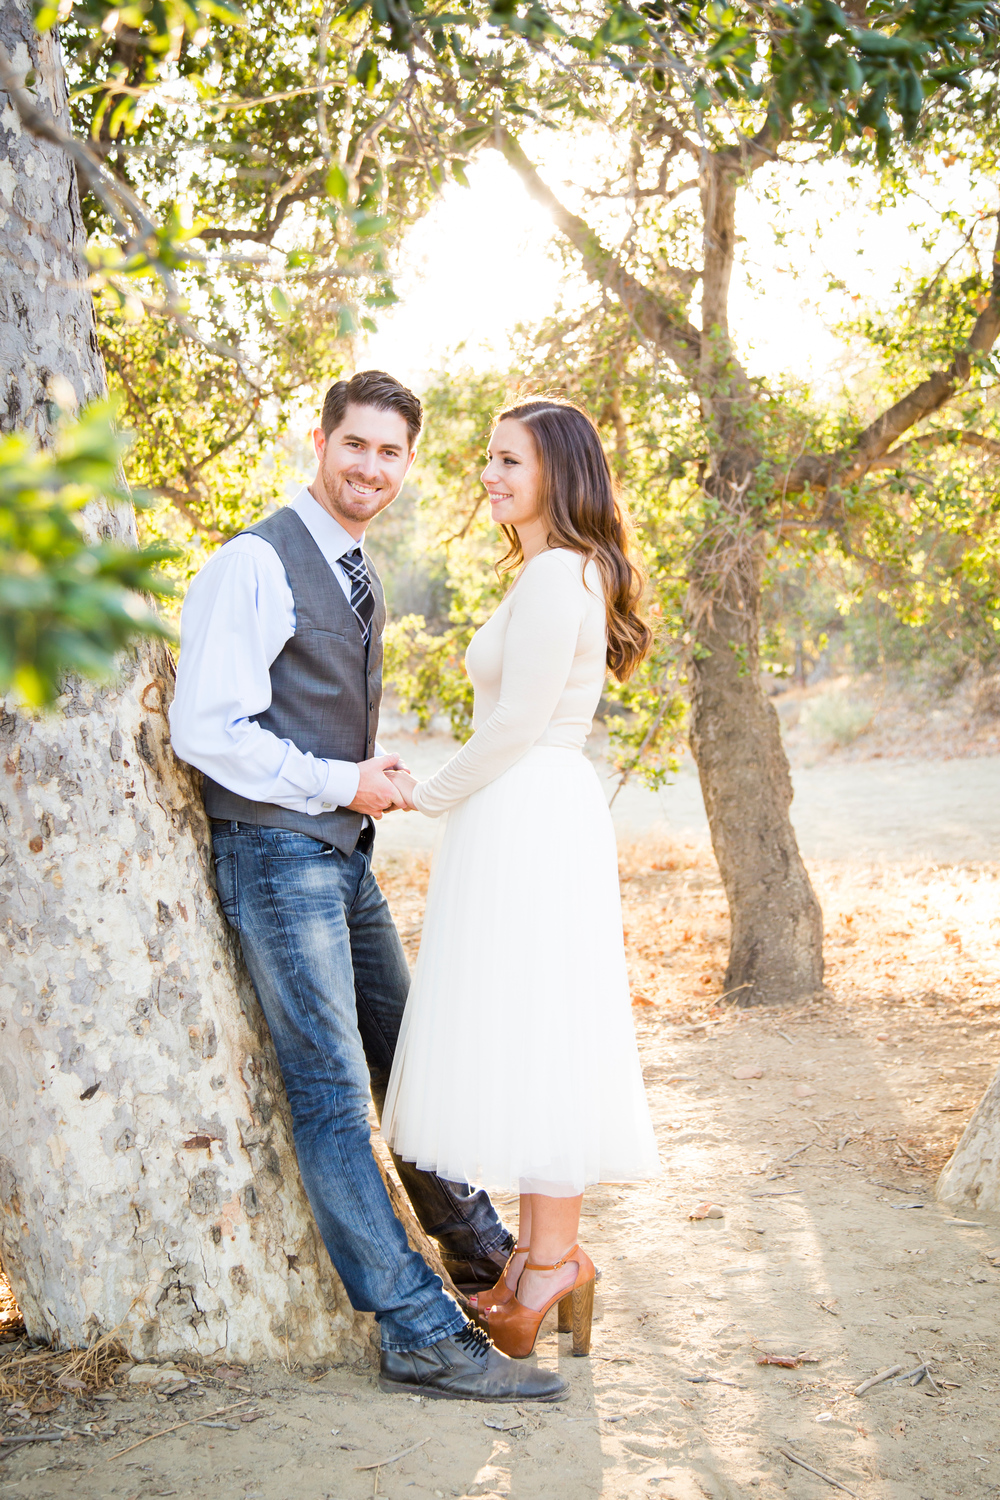 Chris_Megan_Engagement_2014_BKEENEPHOTO-410.jpg